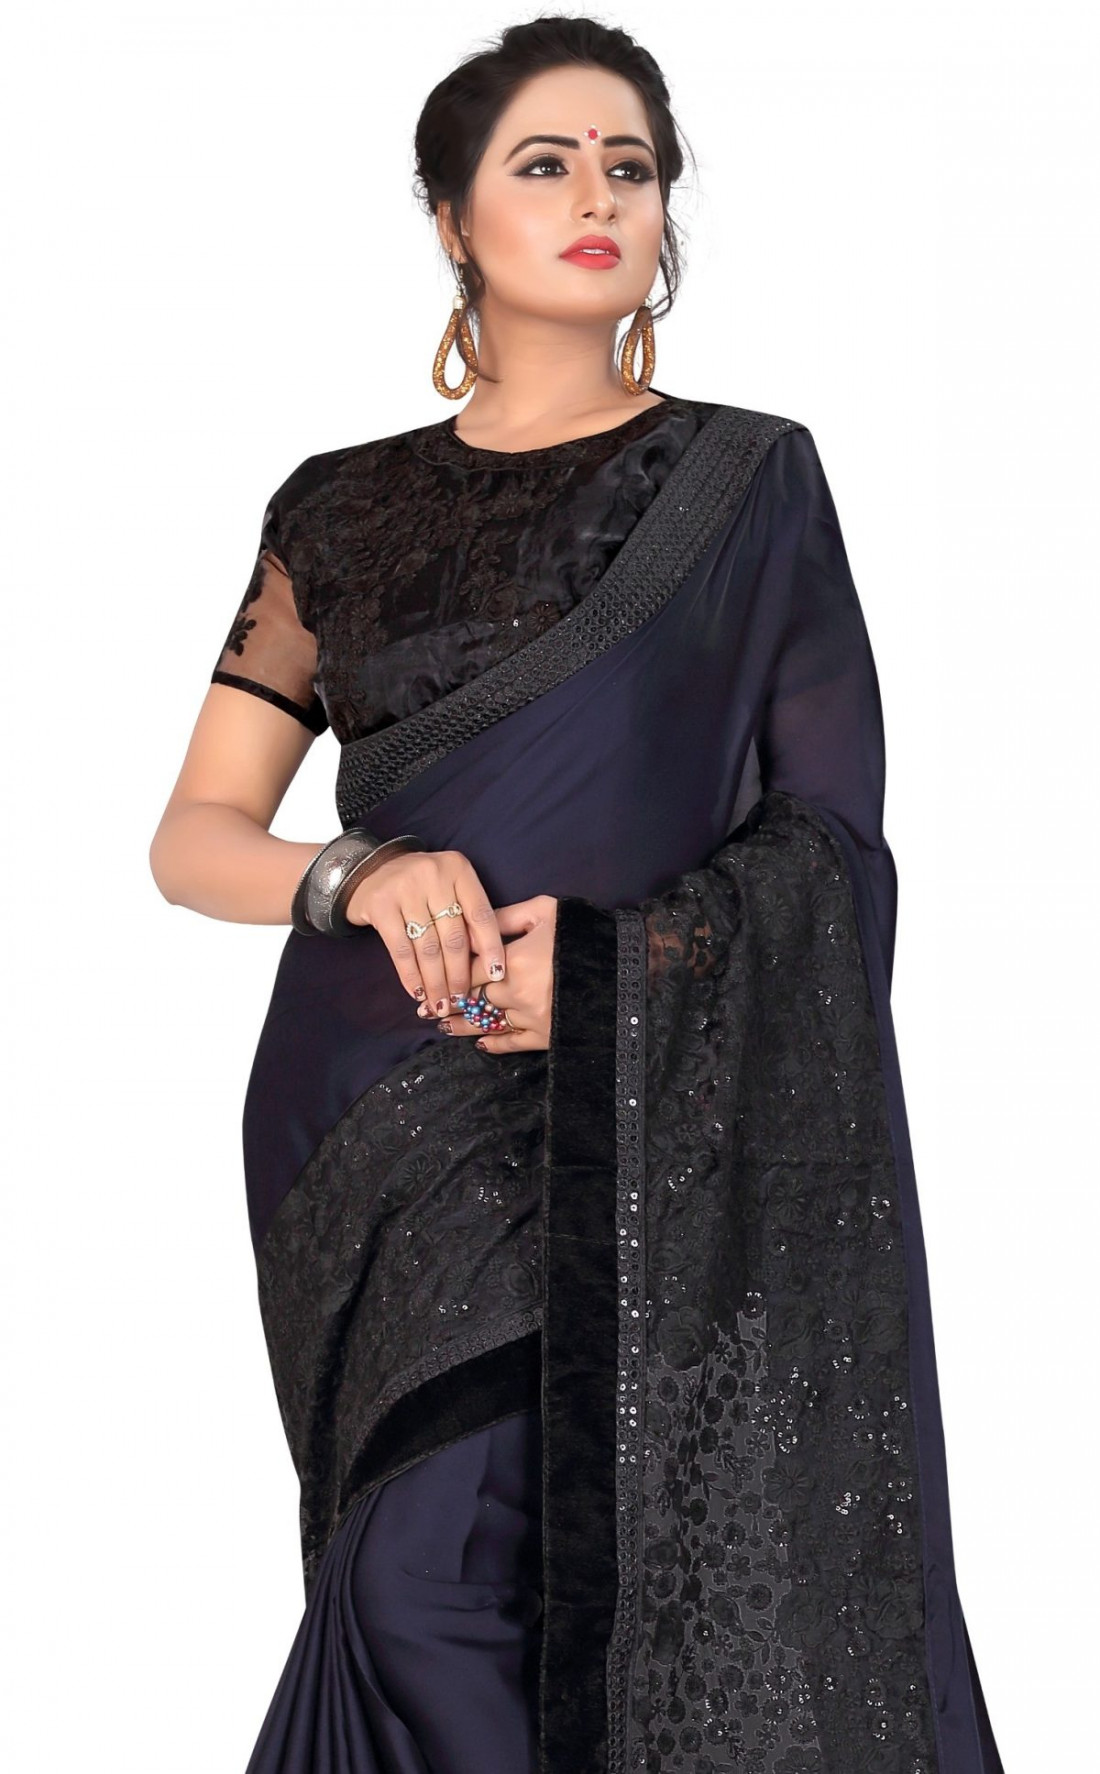 1302011c41 Sudarshan New Georgette Fancy Brocket HEAVY RESHAM & BLACK SIQVENCE  EMBRODERY WORK WITH WORK BLOUSE WITH · Zoom